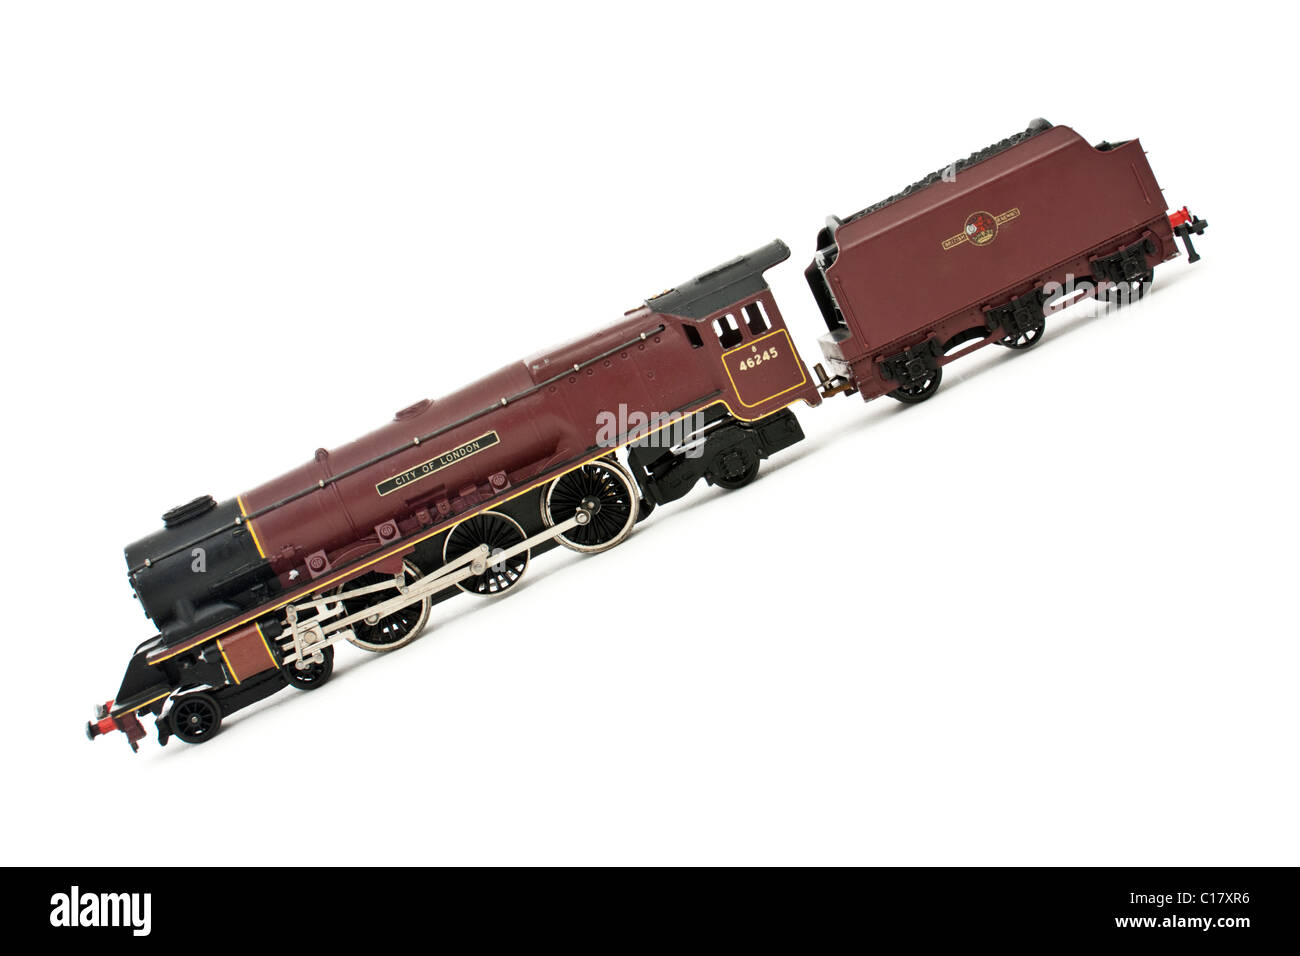 Vintage Hornby Dublo model railway locomotive 'City of London' with tender - Stock Image